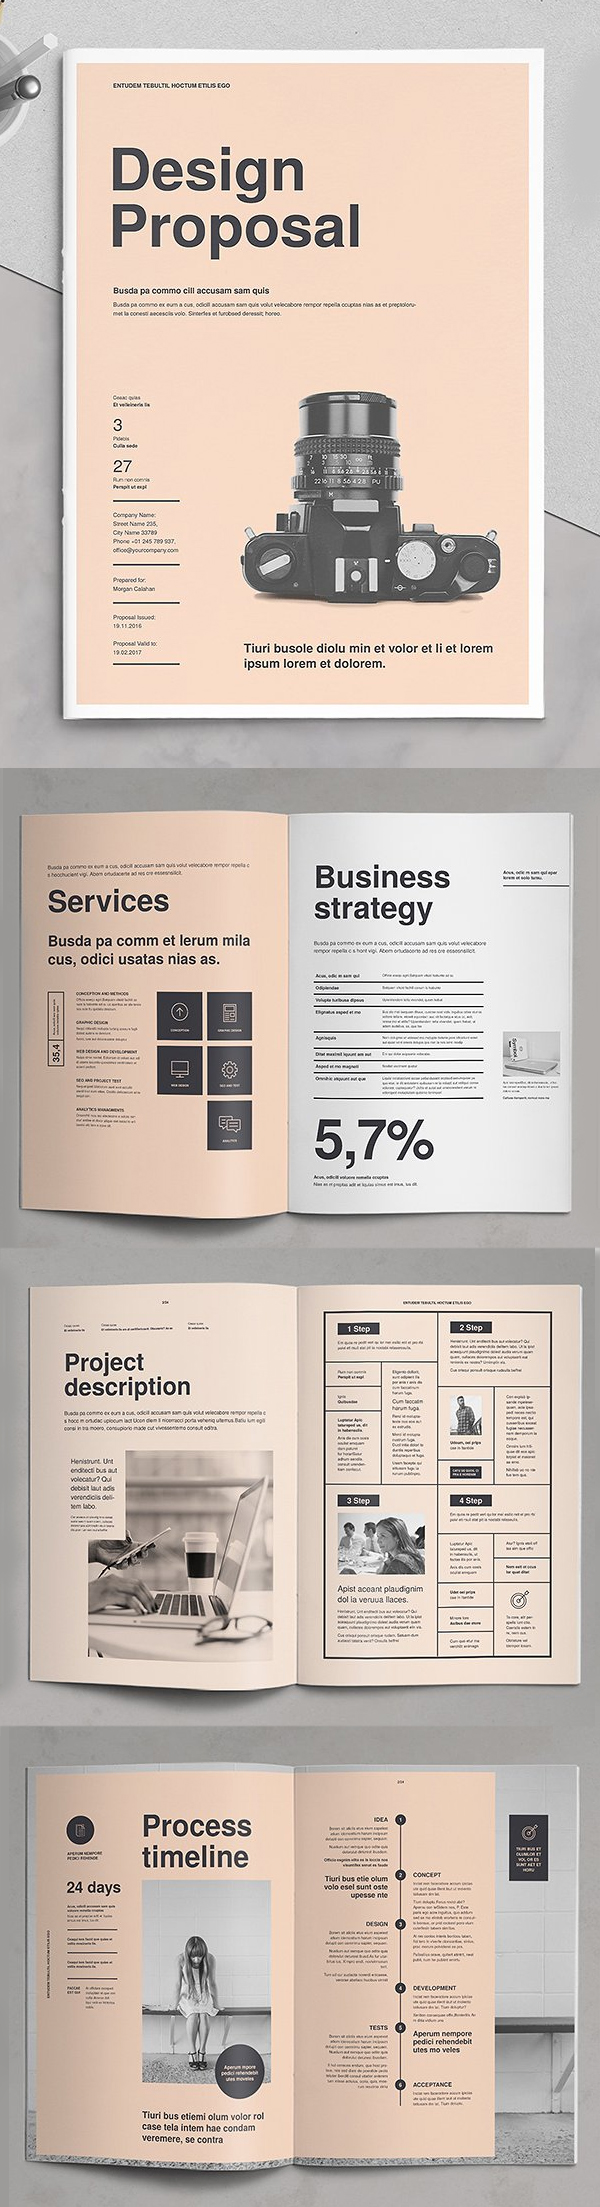 Professional Business Proposal Templates Design - 2